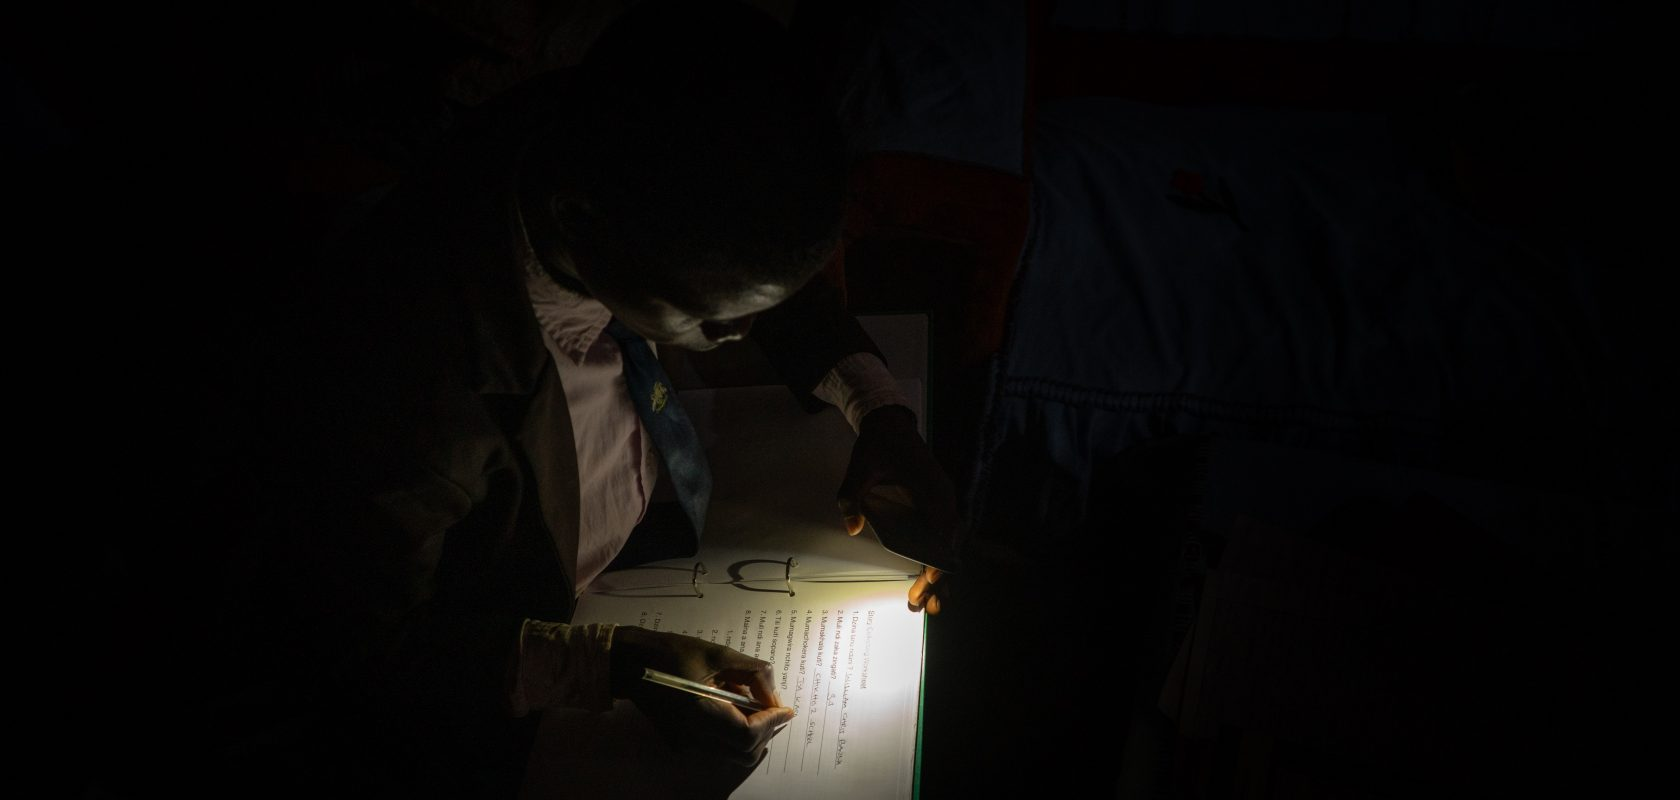 William Banda using a cell phone to light his notes